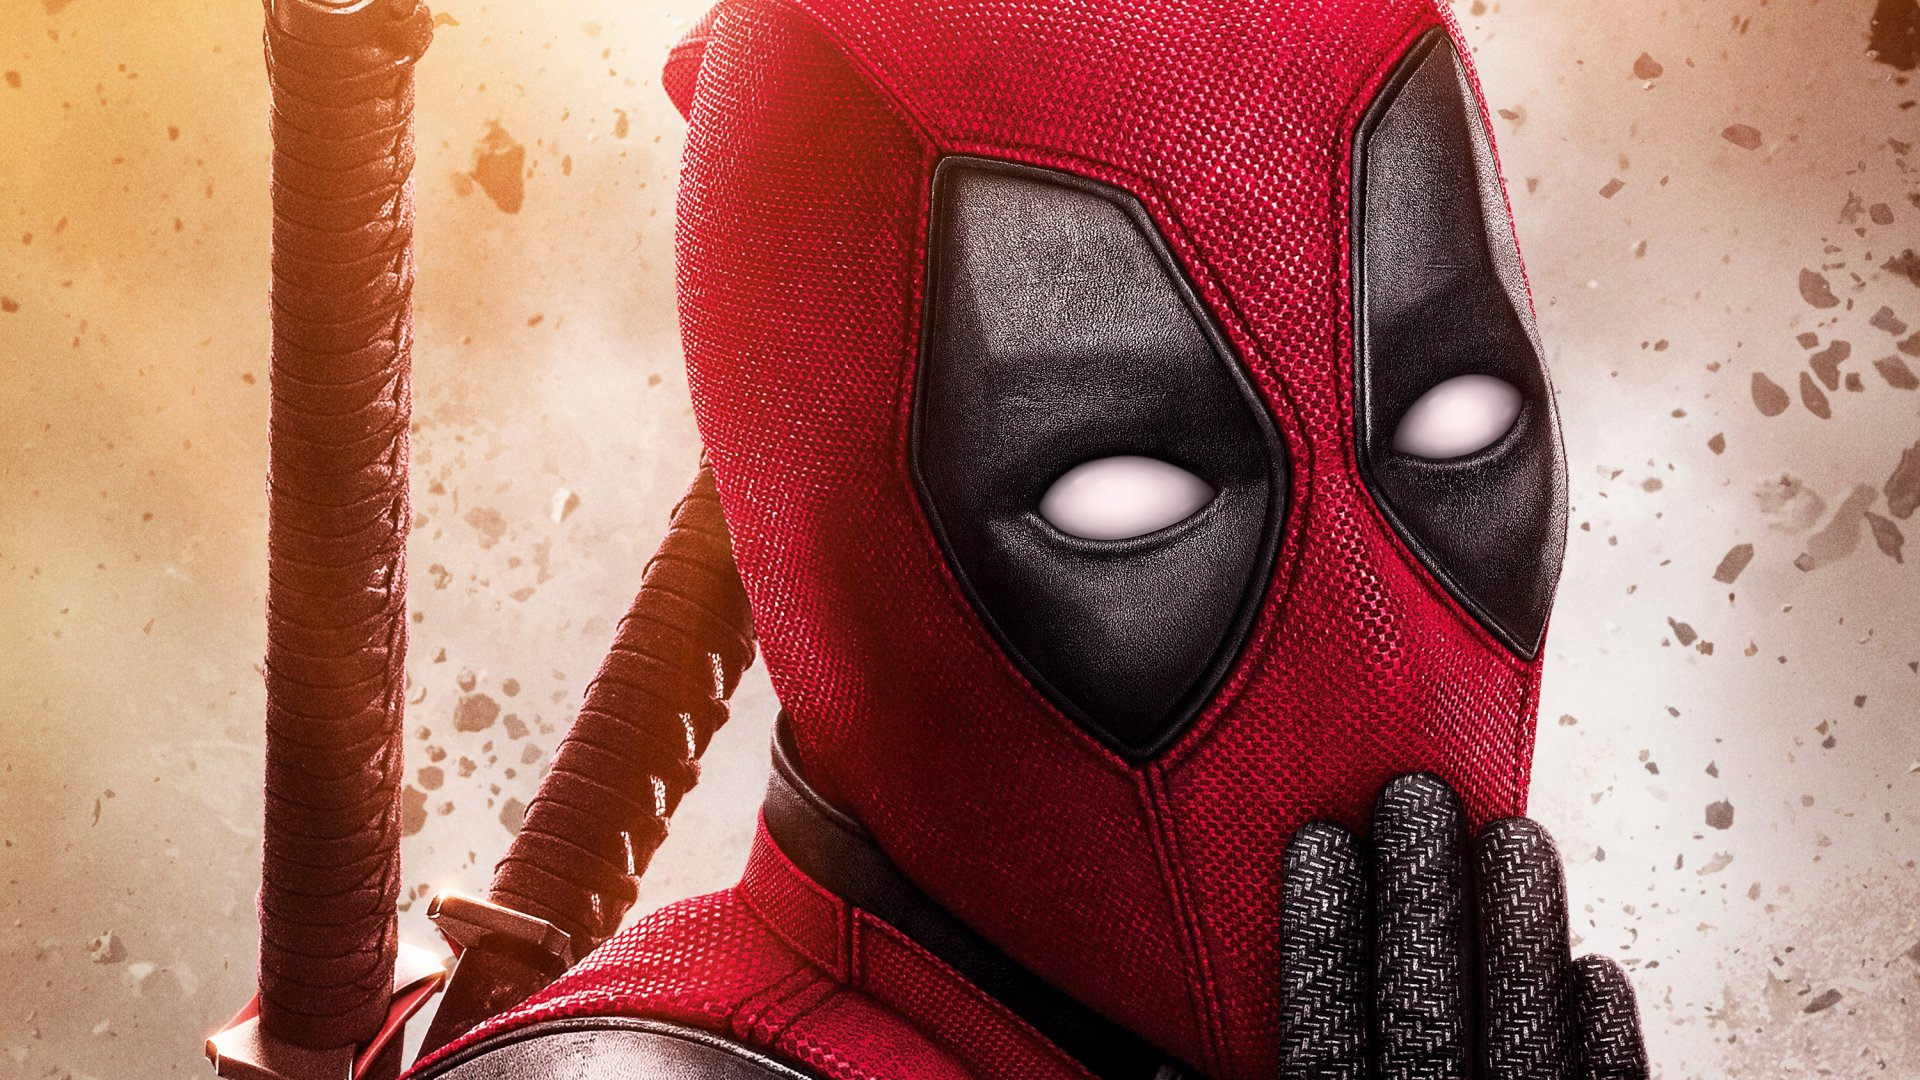 Deadpool 2 poster Full HD